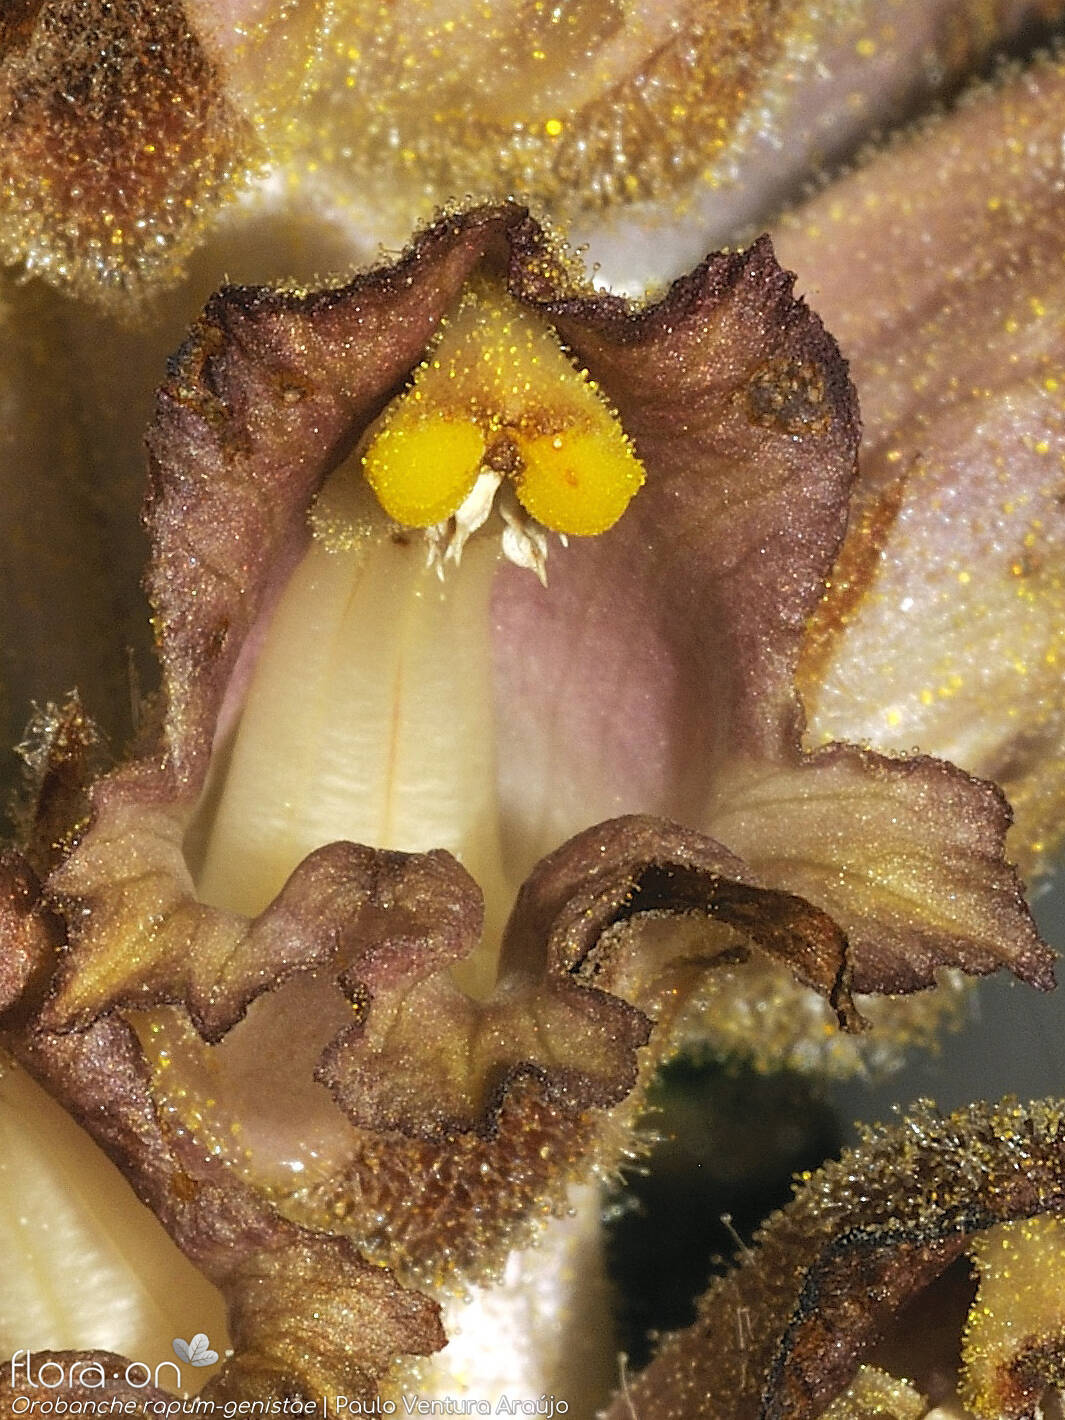 Orobanche rapum-genistae - Flor (close-up) | Paulo Ventura Araújo; CC BY-NC 4.0